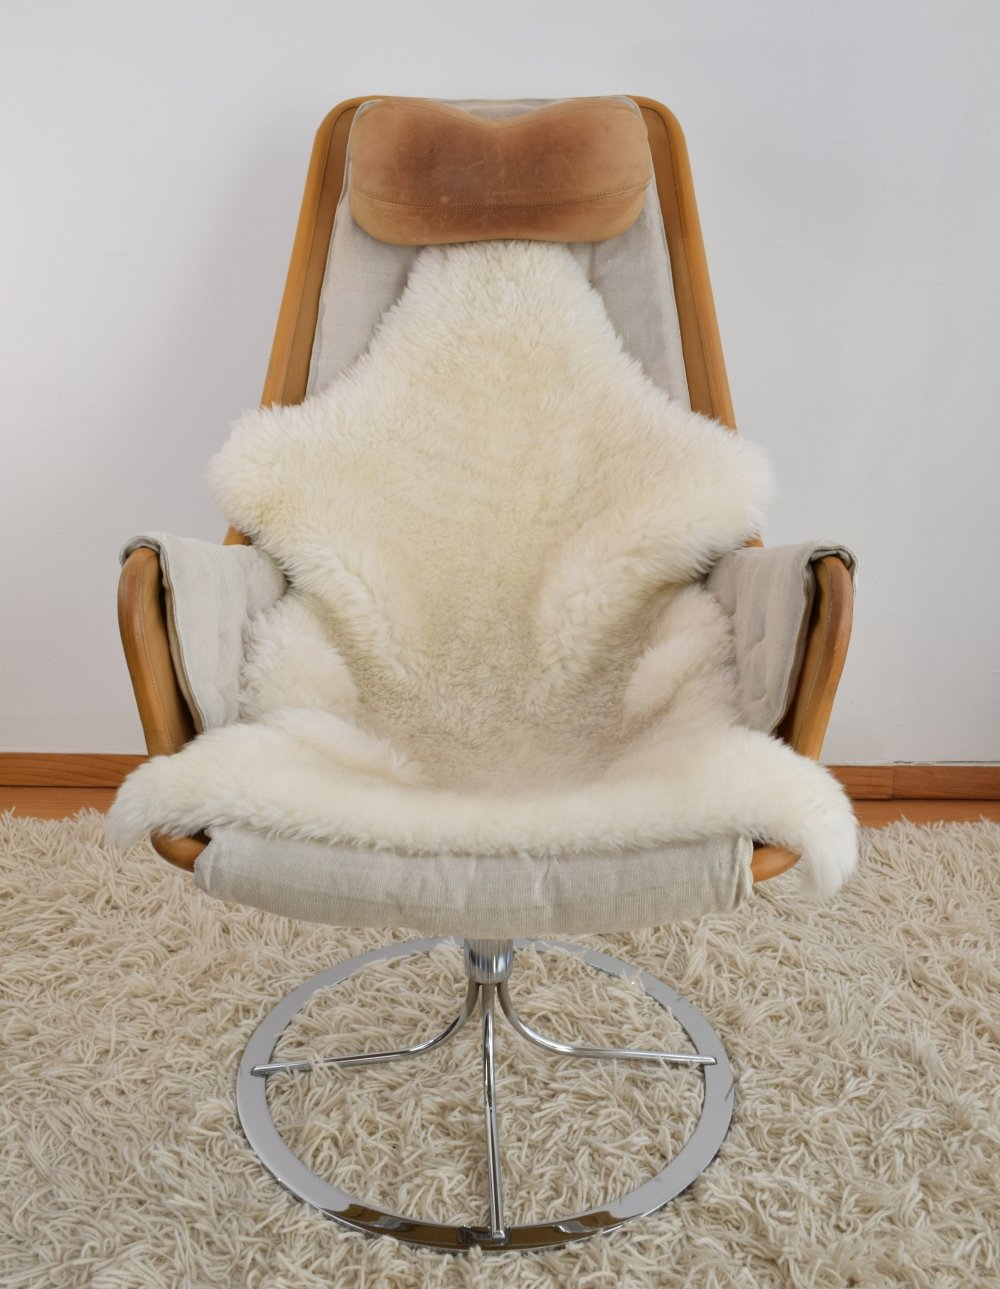 Bruno Mathsson Jetson Easy Chair from the 1970